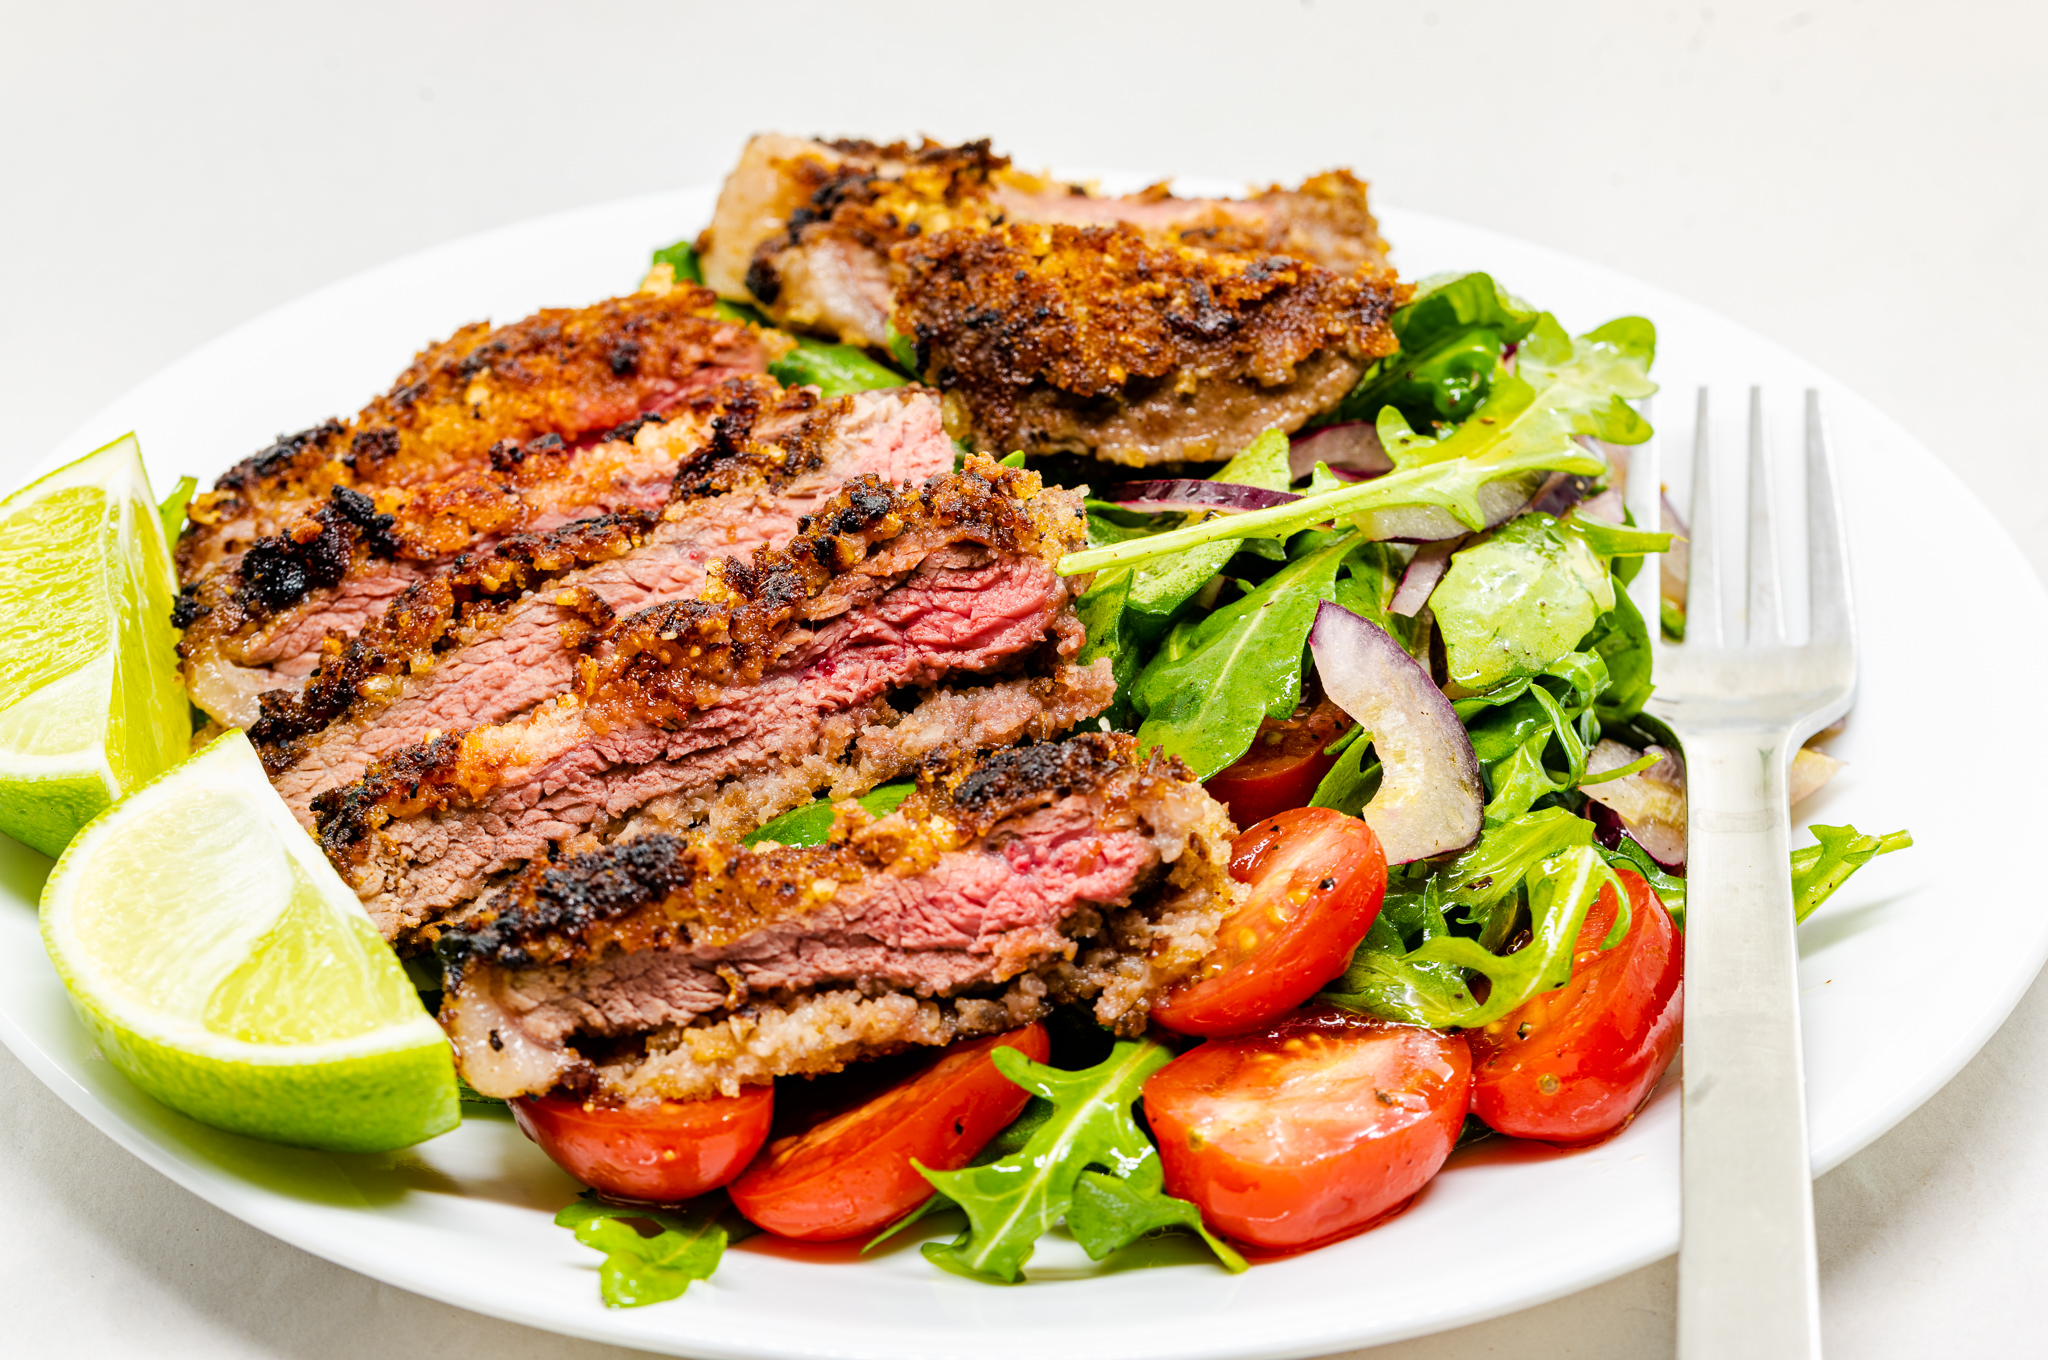 Crumbed, nutted, and beaten rump steak